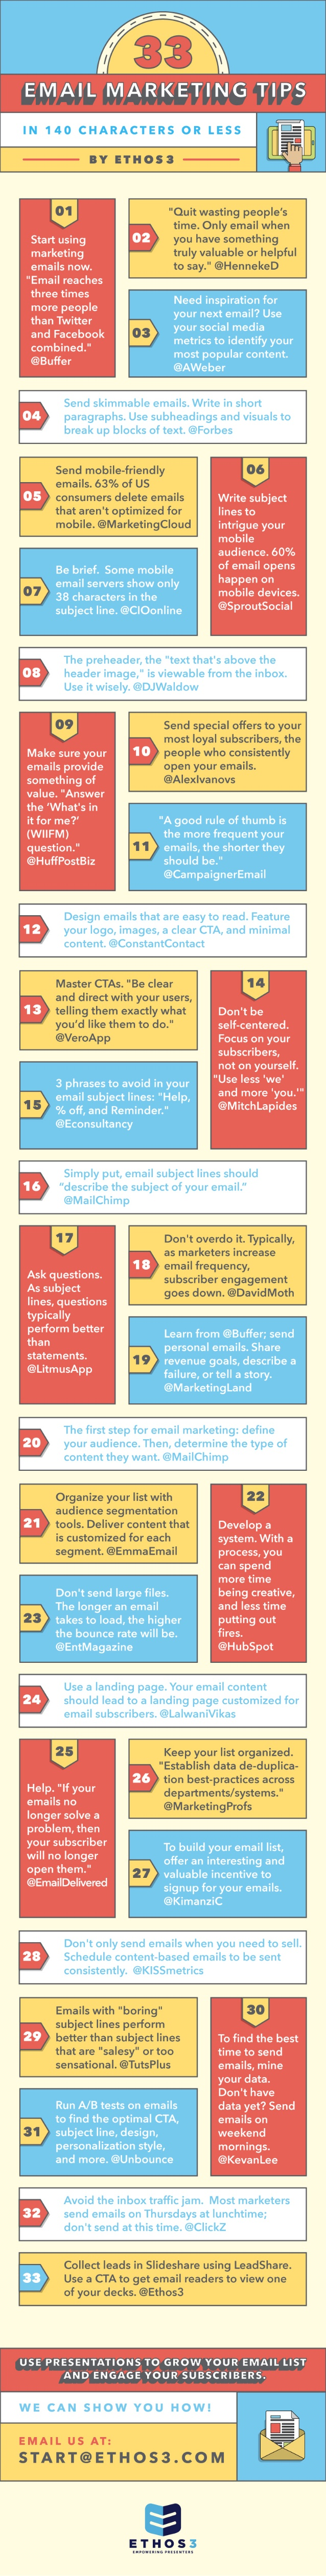 Infographic-33-Exceptional-Email-Marketing-Tips-in-140-Characters-or-Less